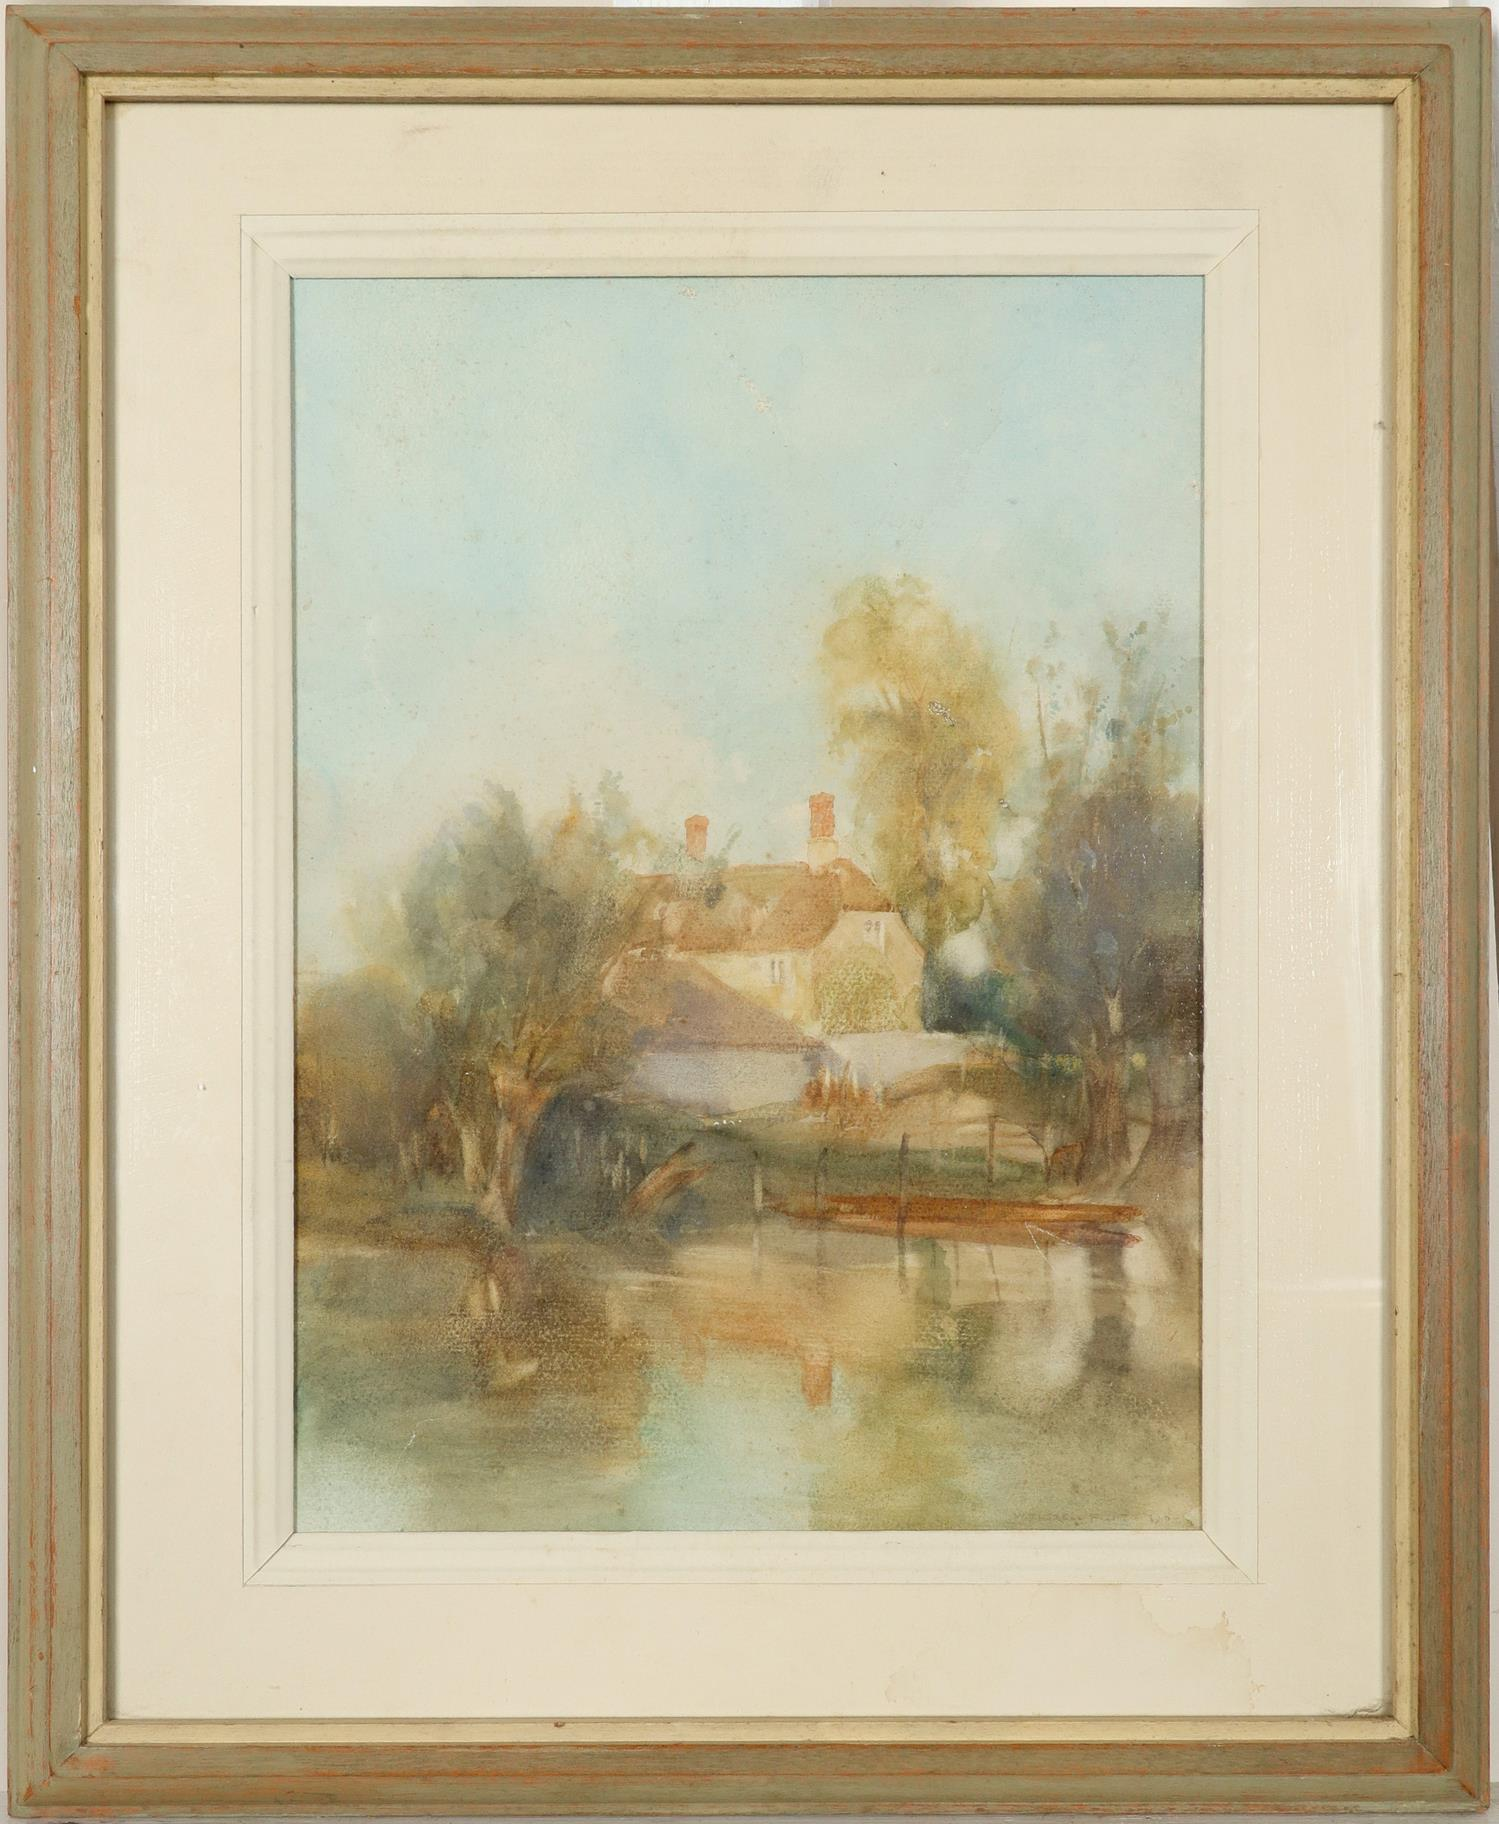 ‡Sir William Russell Flint RA, ROI (Scottish 1880-1869) View of a house by the river Signed and - Image 2 of 3